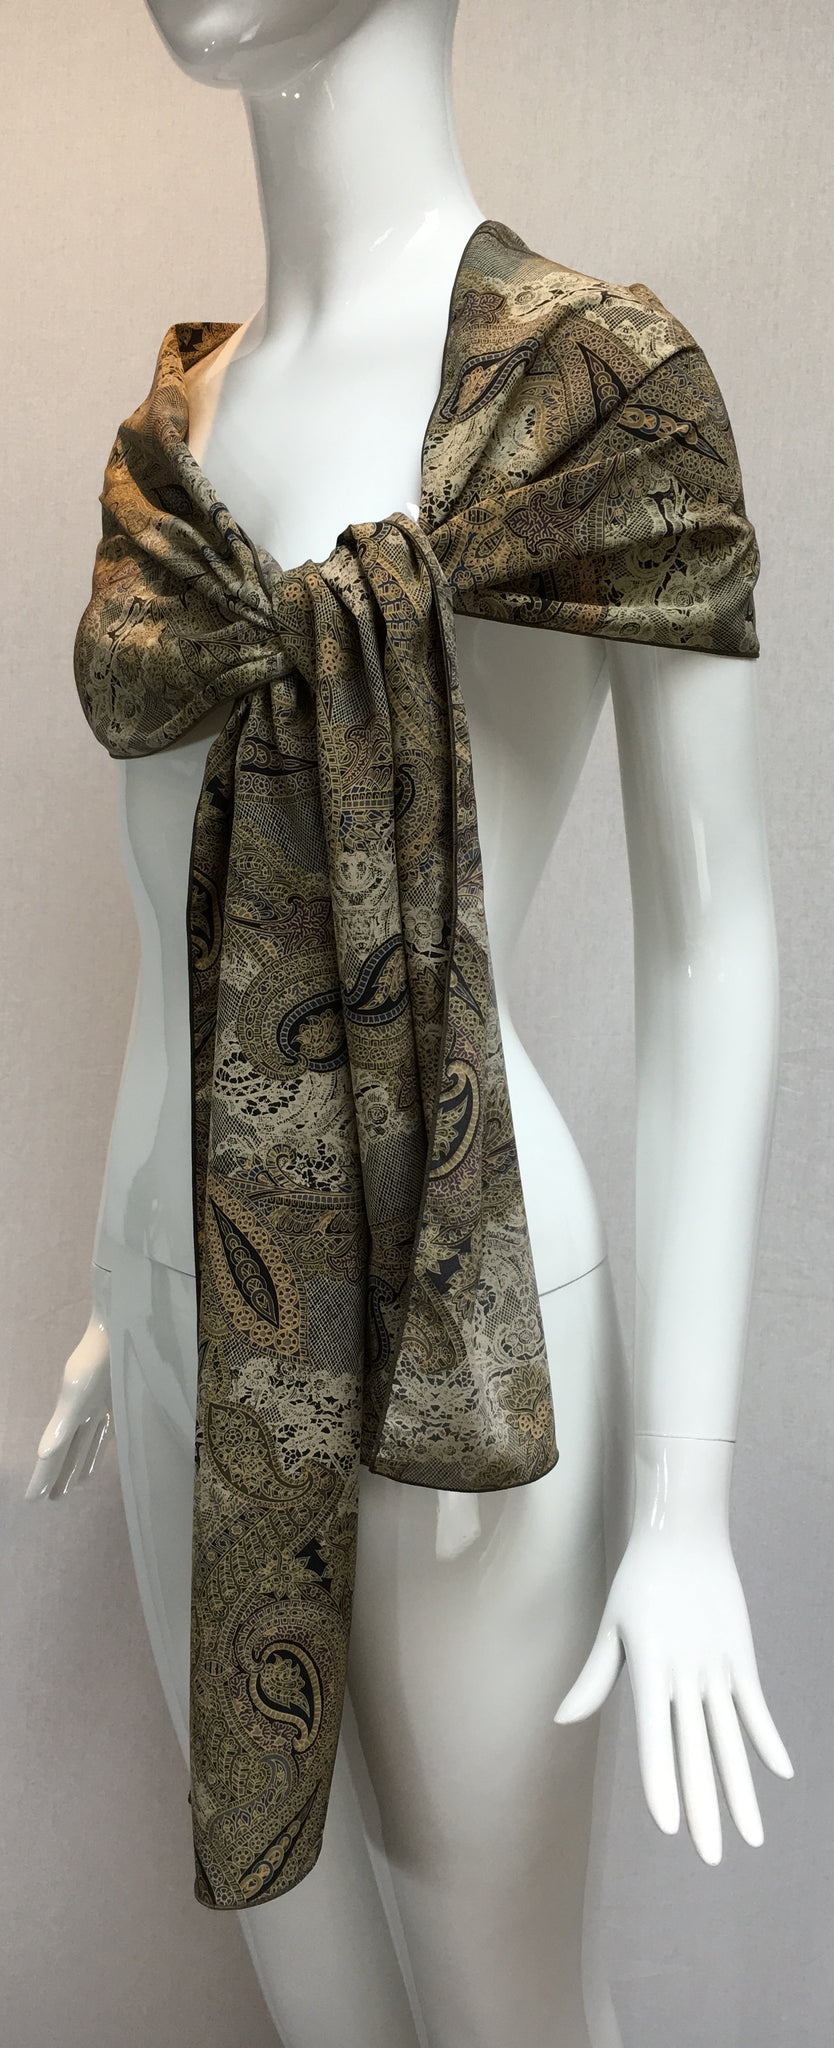 Deleuse Silk Scarf, SOLD OUT